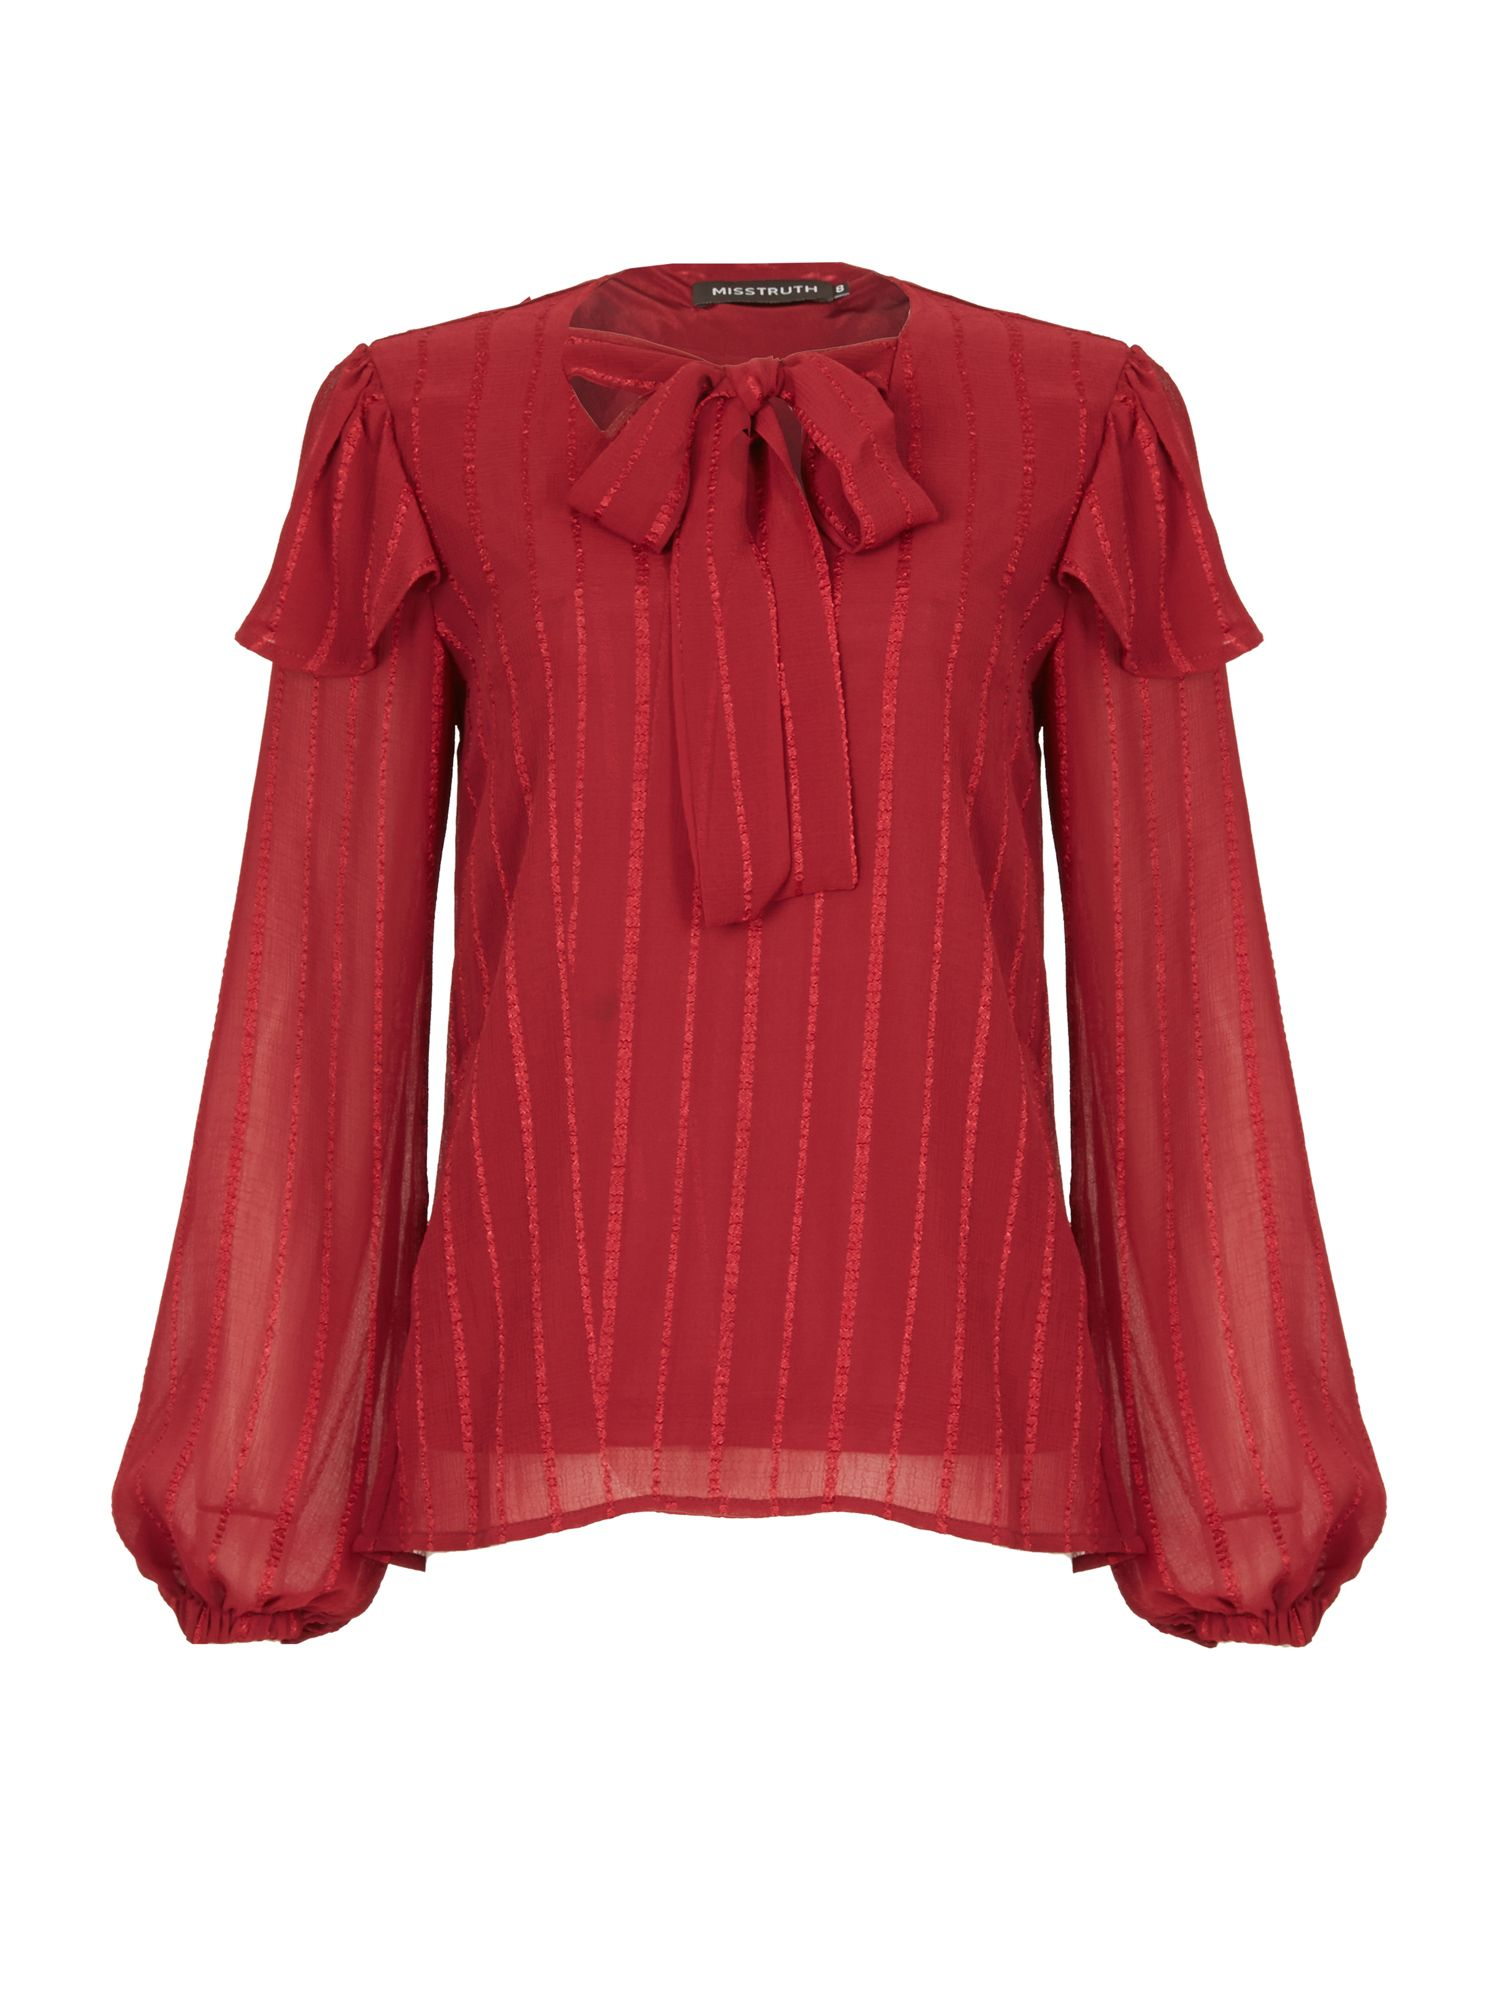 MISSTRUTH Pussybow Chiffon Blouse, Dark Red